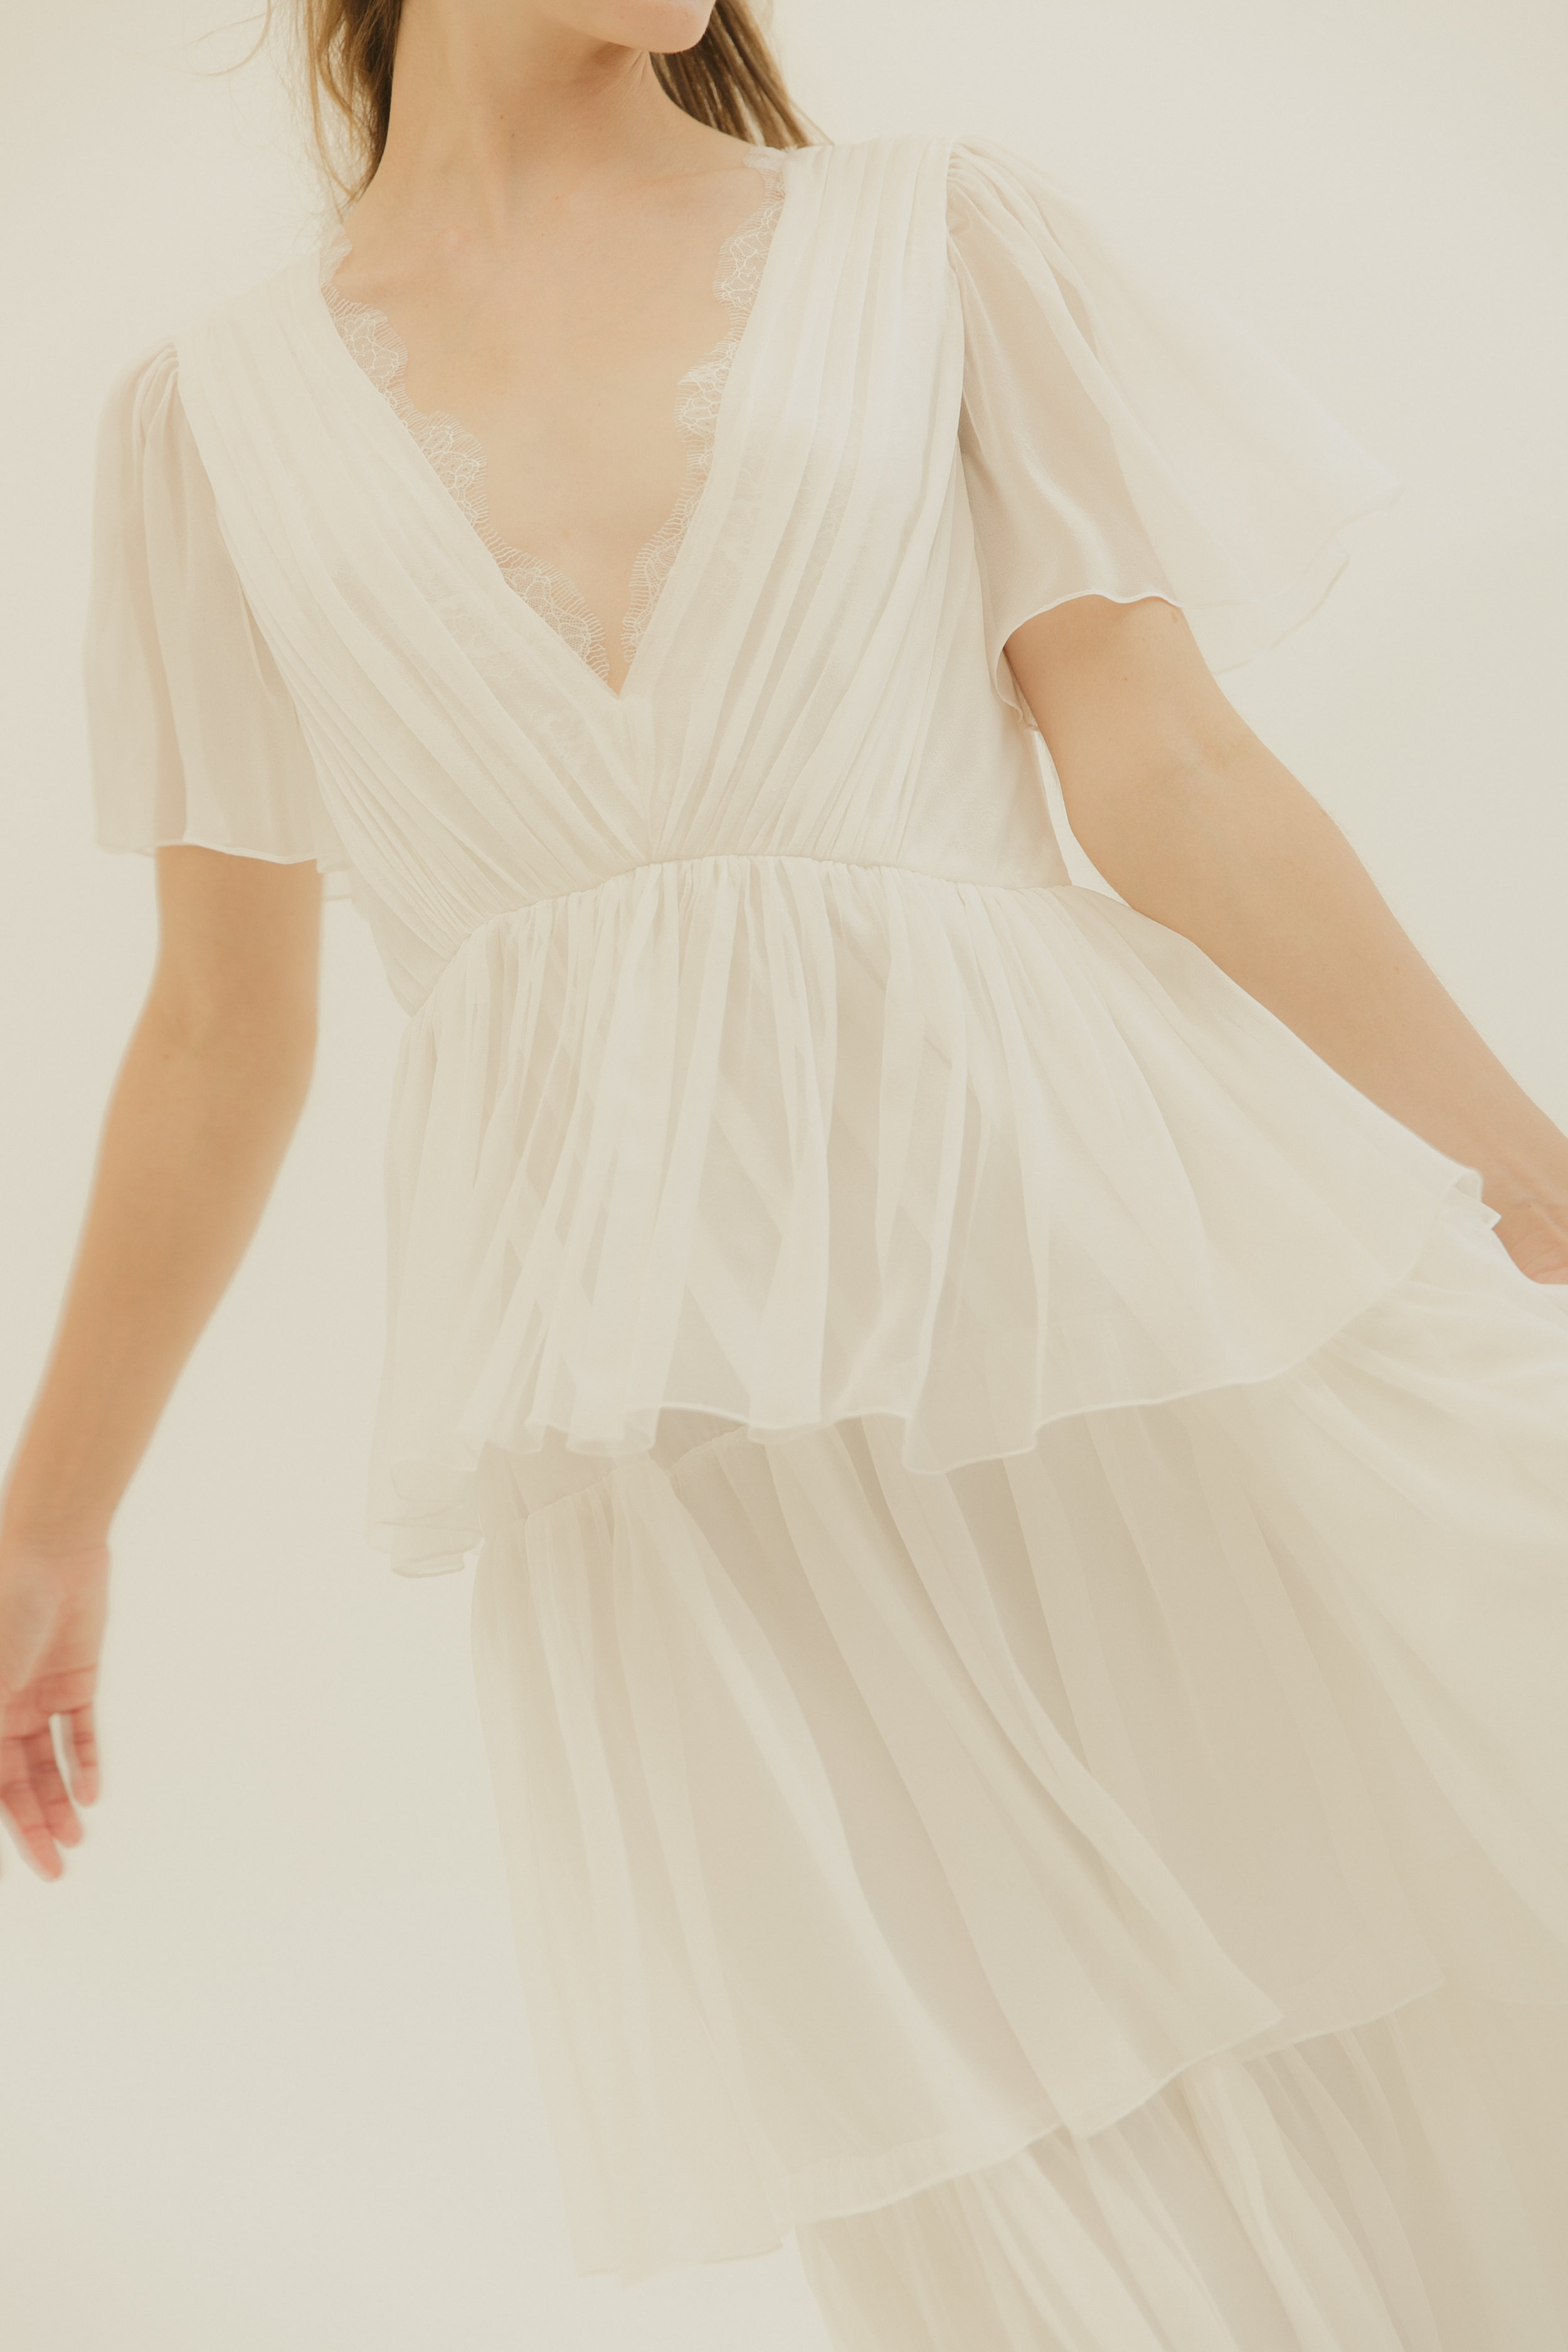 New York bridal brand L.Wells Bridal featured on the LOVE FIND CO. Bridal Directory